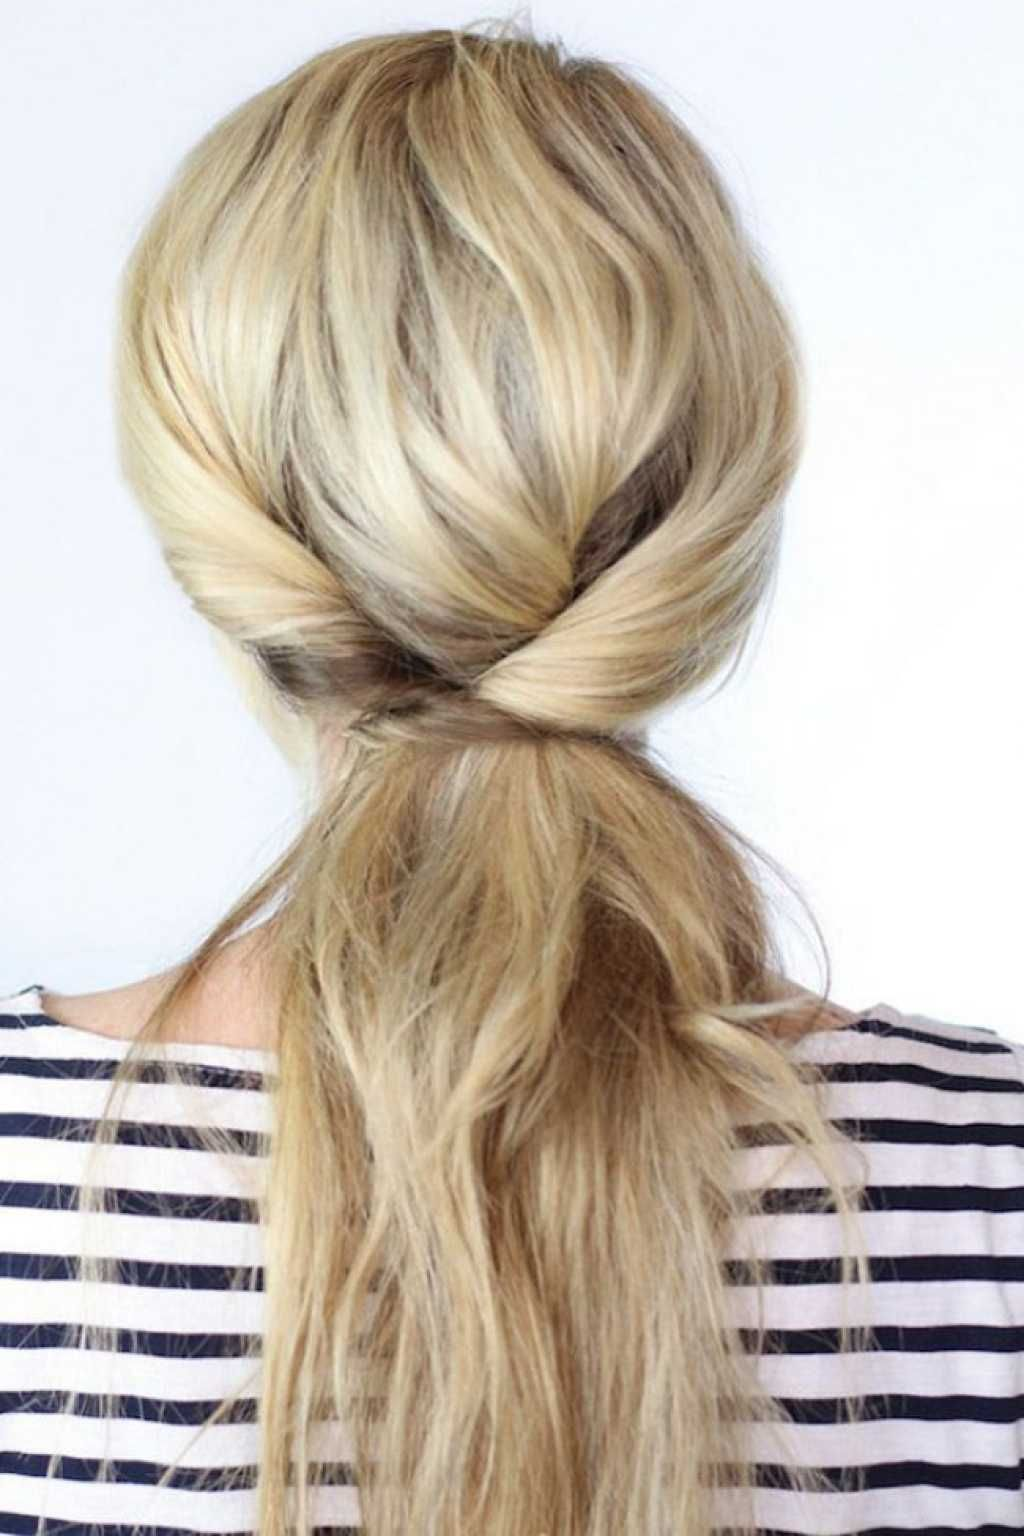 Beautiful ponytail hairstyle in 5 minutes :: one1lady.com :: #hair #hairs #hairstyle #hairstyles